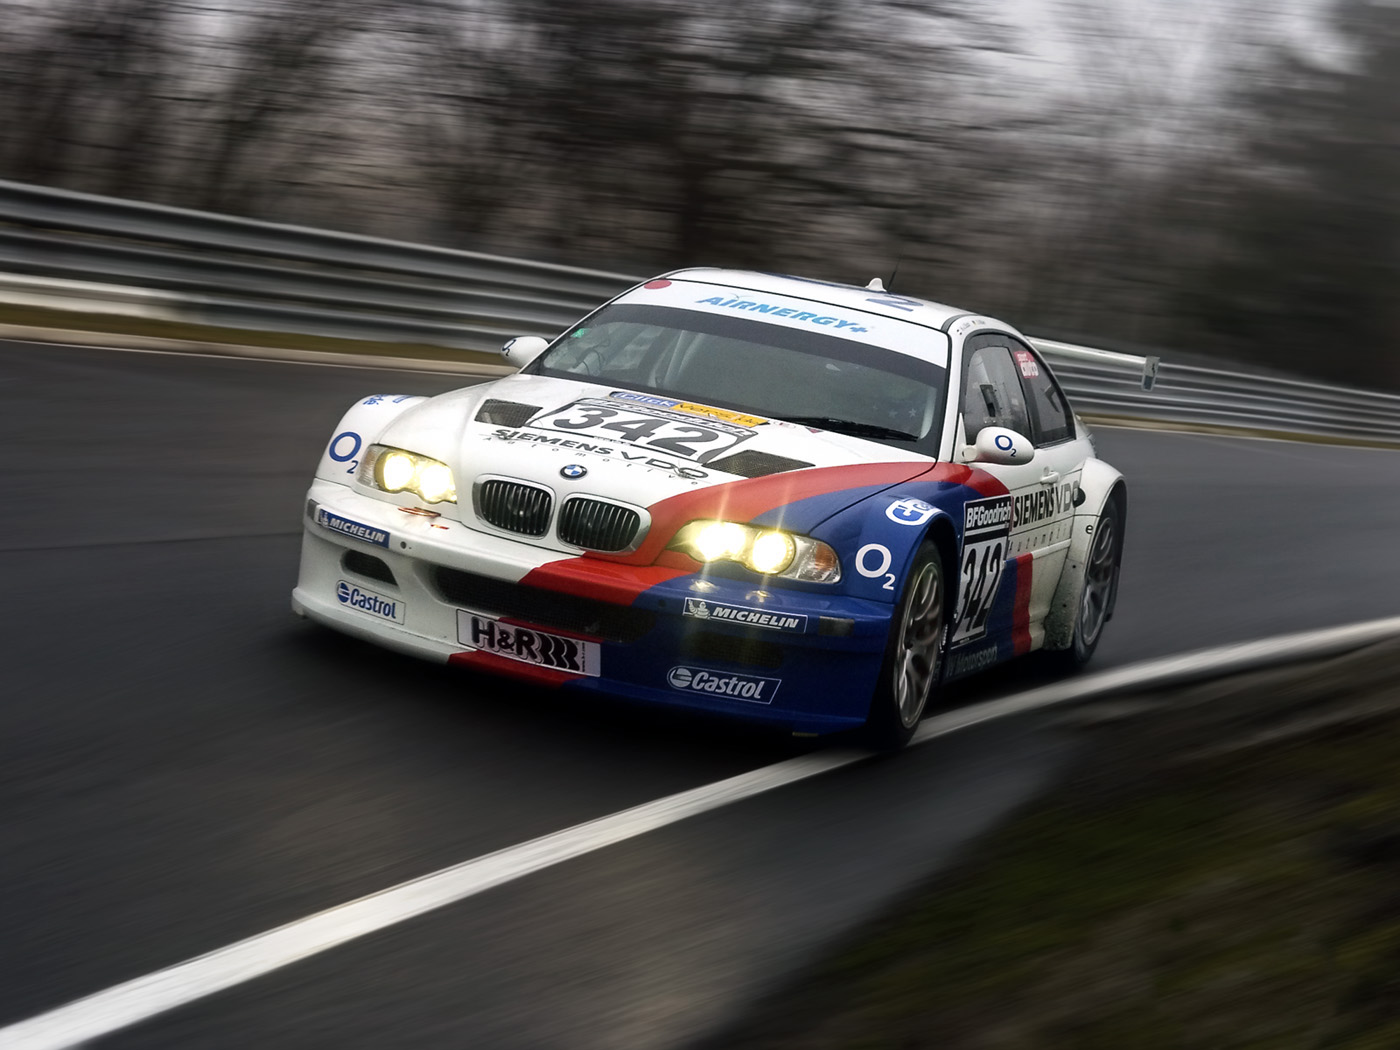 Car Raja Fir Aon BMW M3 GTR New Cars Car Reviews Car Pictures And